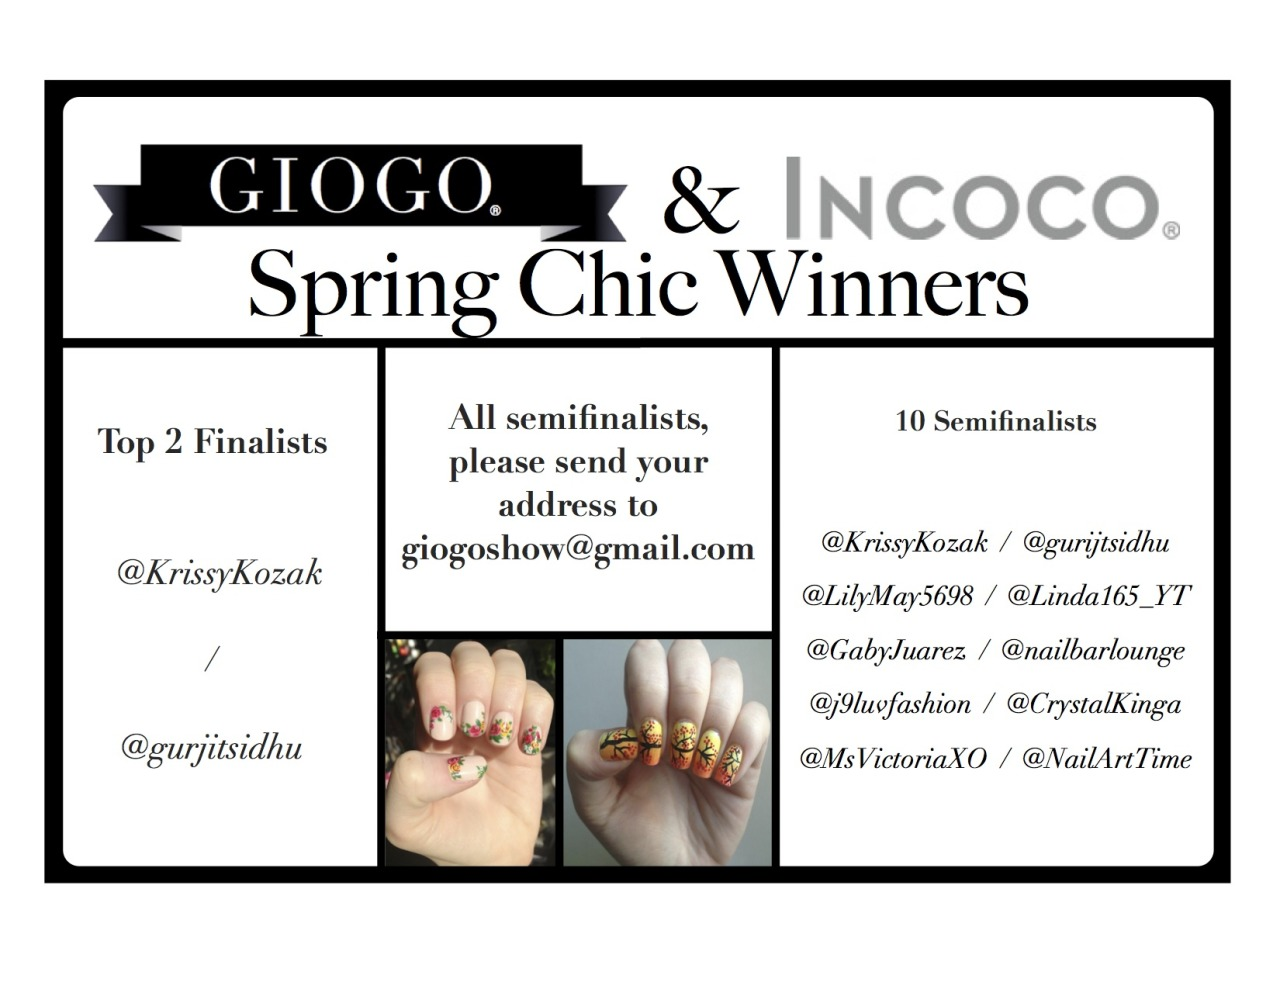 giogo:  The Winners of the #GIOGO x #WinIncoco Spring Chic Contest are announced!  AHH!!! This is the coolest thing ever! Thanks so much Giogo and Incoco!! I (@KrissyKozak) got to be a finalist for my pink floral design and my poppy design was a semifinalist!